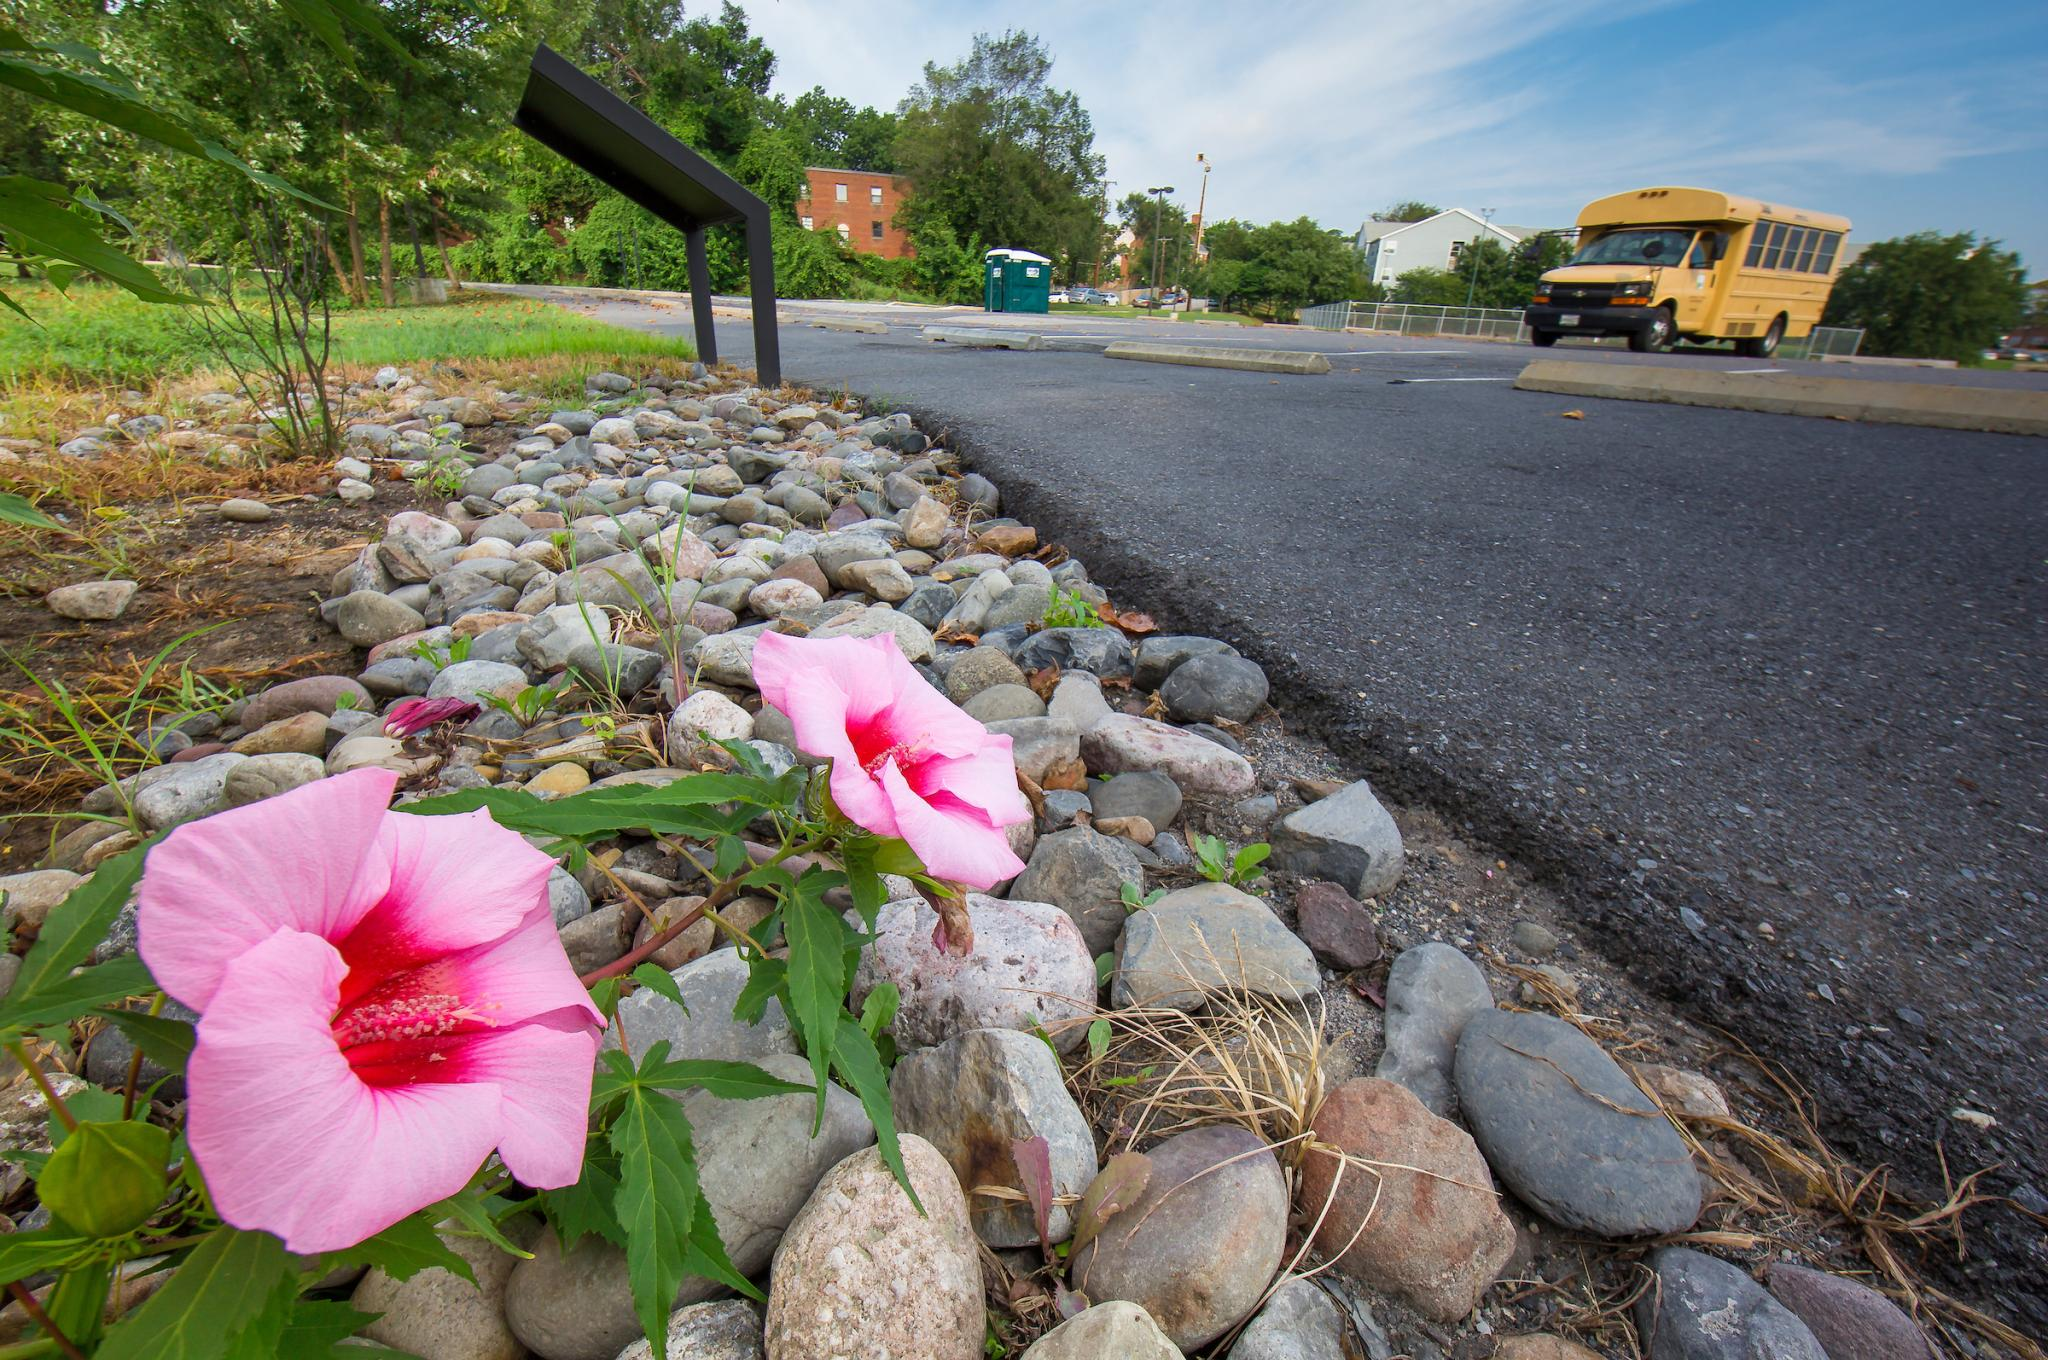 Rain gardens like this help keep toxic runoff from parking lots from entering the river system.